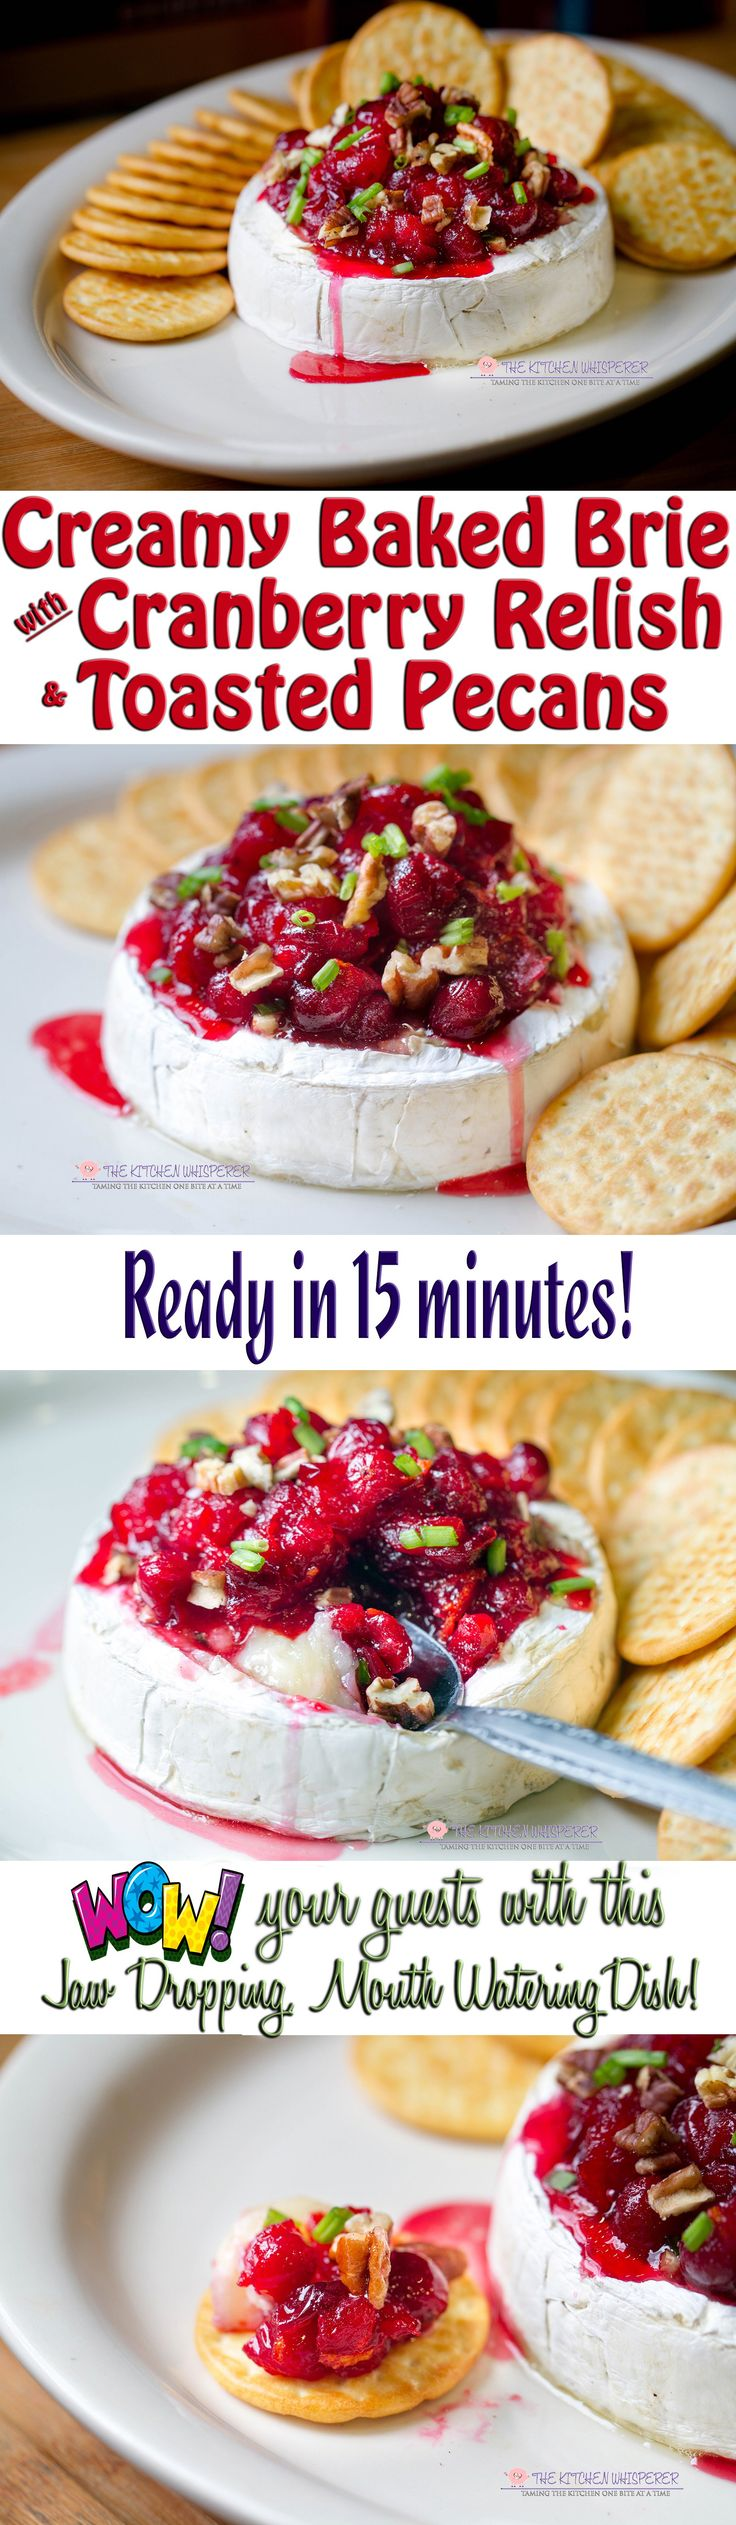 baked-brie-with-cranberry-relish-and-pecans-collage2